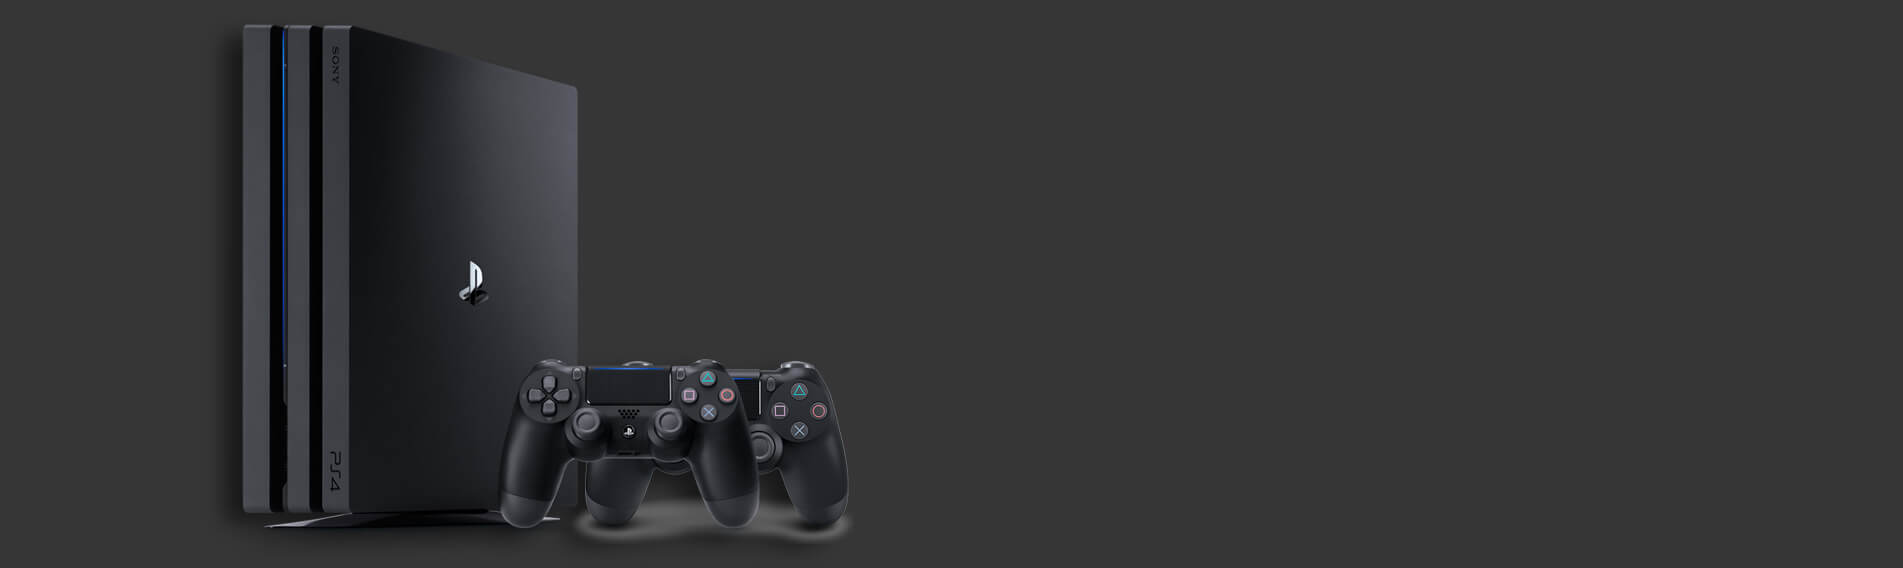 playstation 4 slider